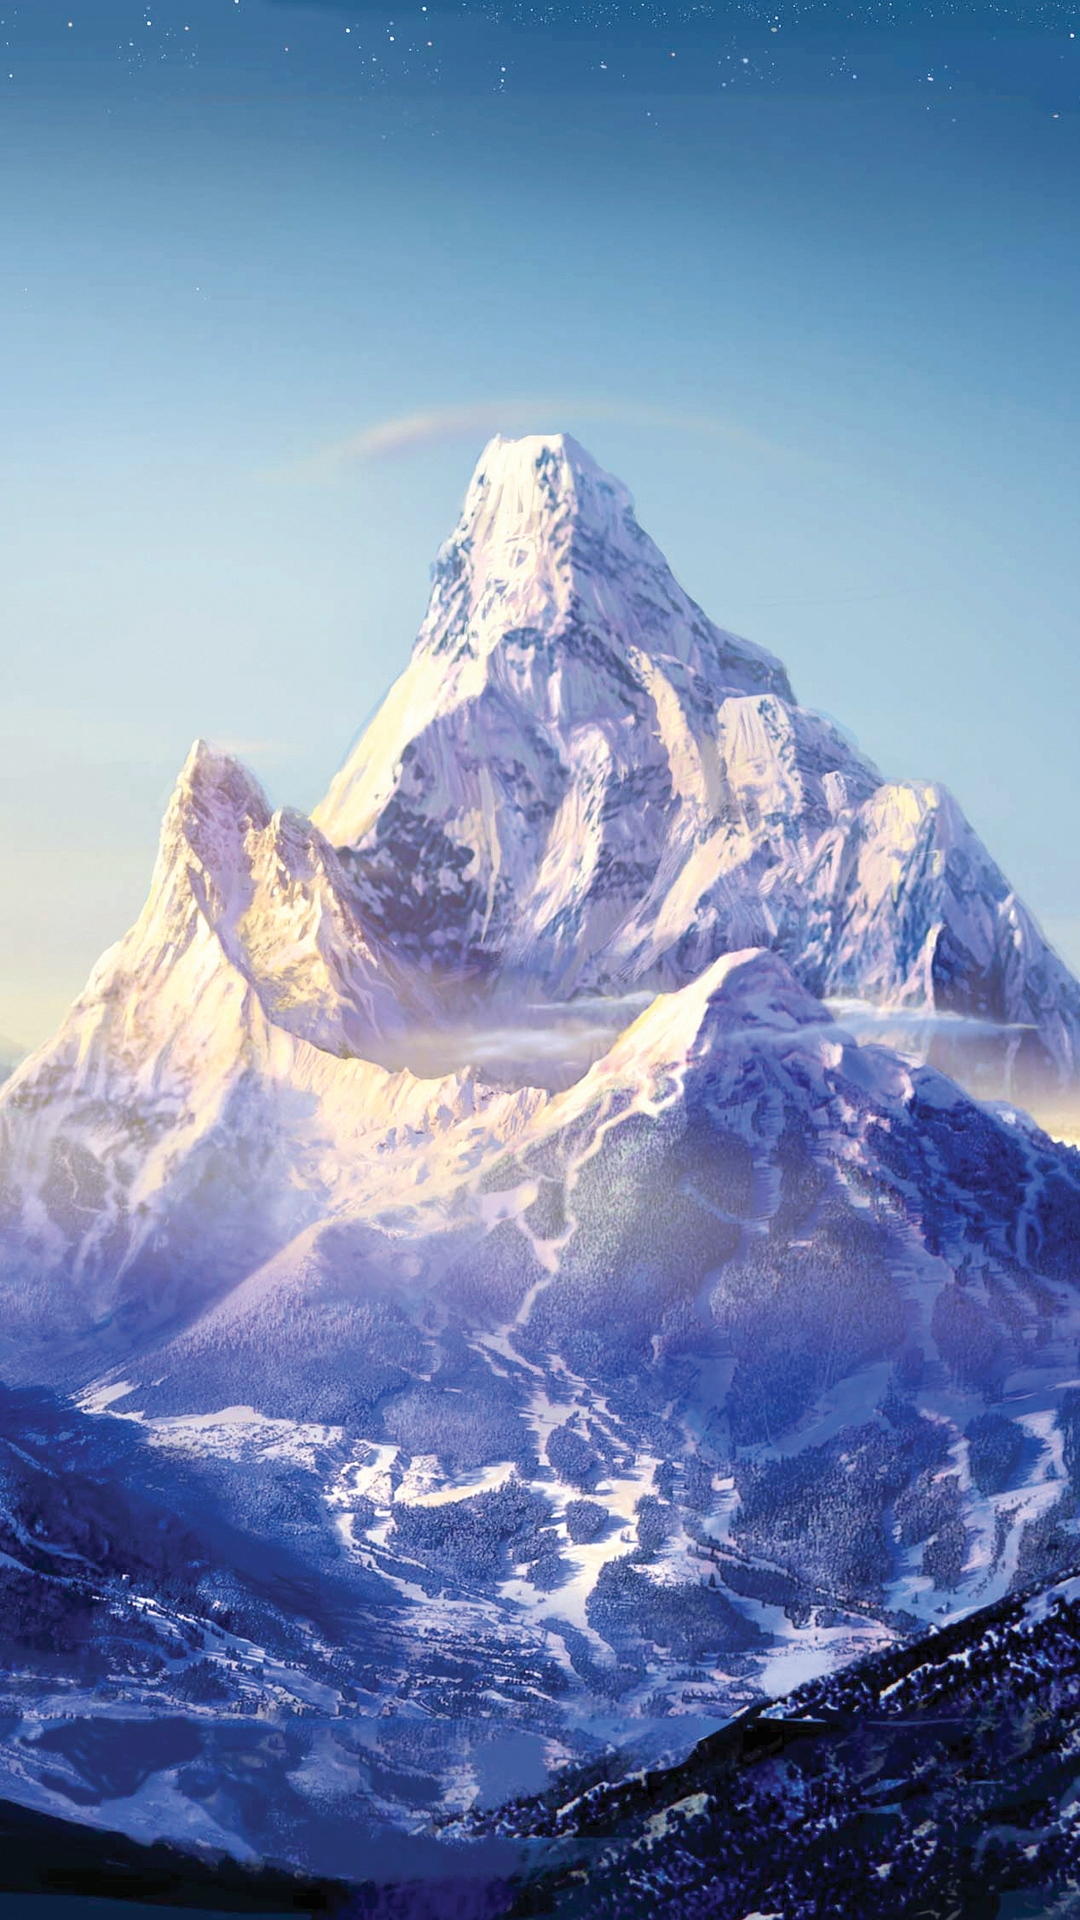 Download Wallpaper Mountain Hexagon - everest-mountain-snow-stars-galaxy-note-hd-wallpaper  Picture_562787.jpg